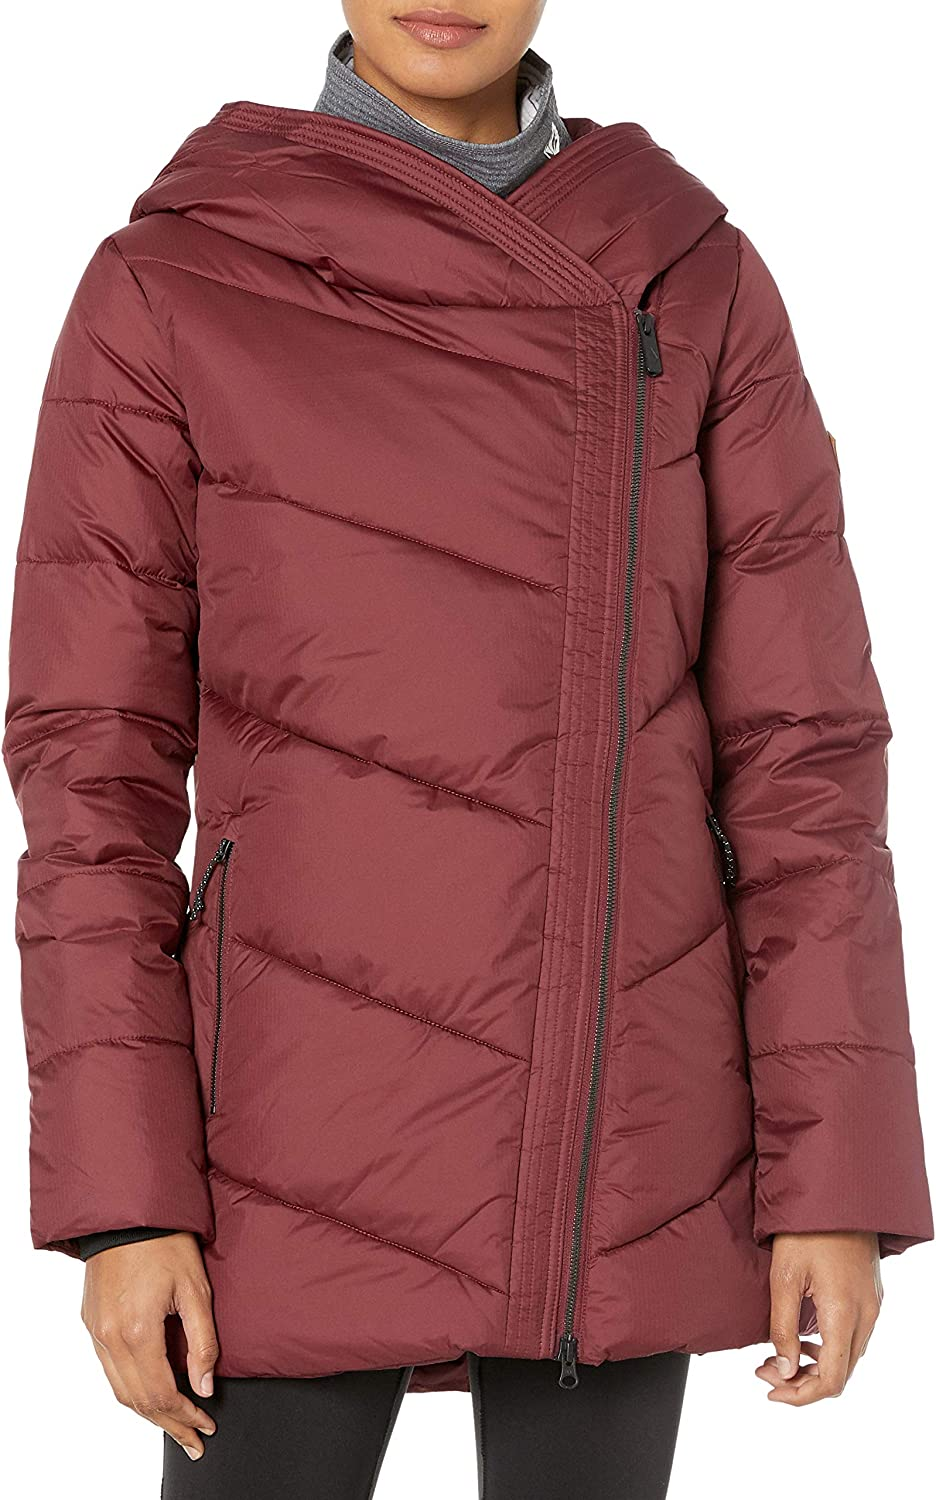 Max 55% OFF Volcom Women's Structure Down Jacket Oklahoma City Mall Snow